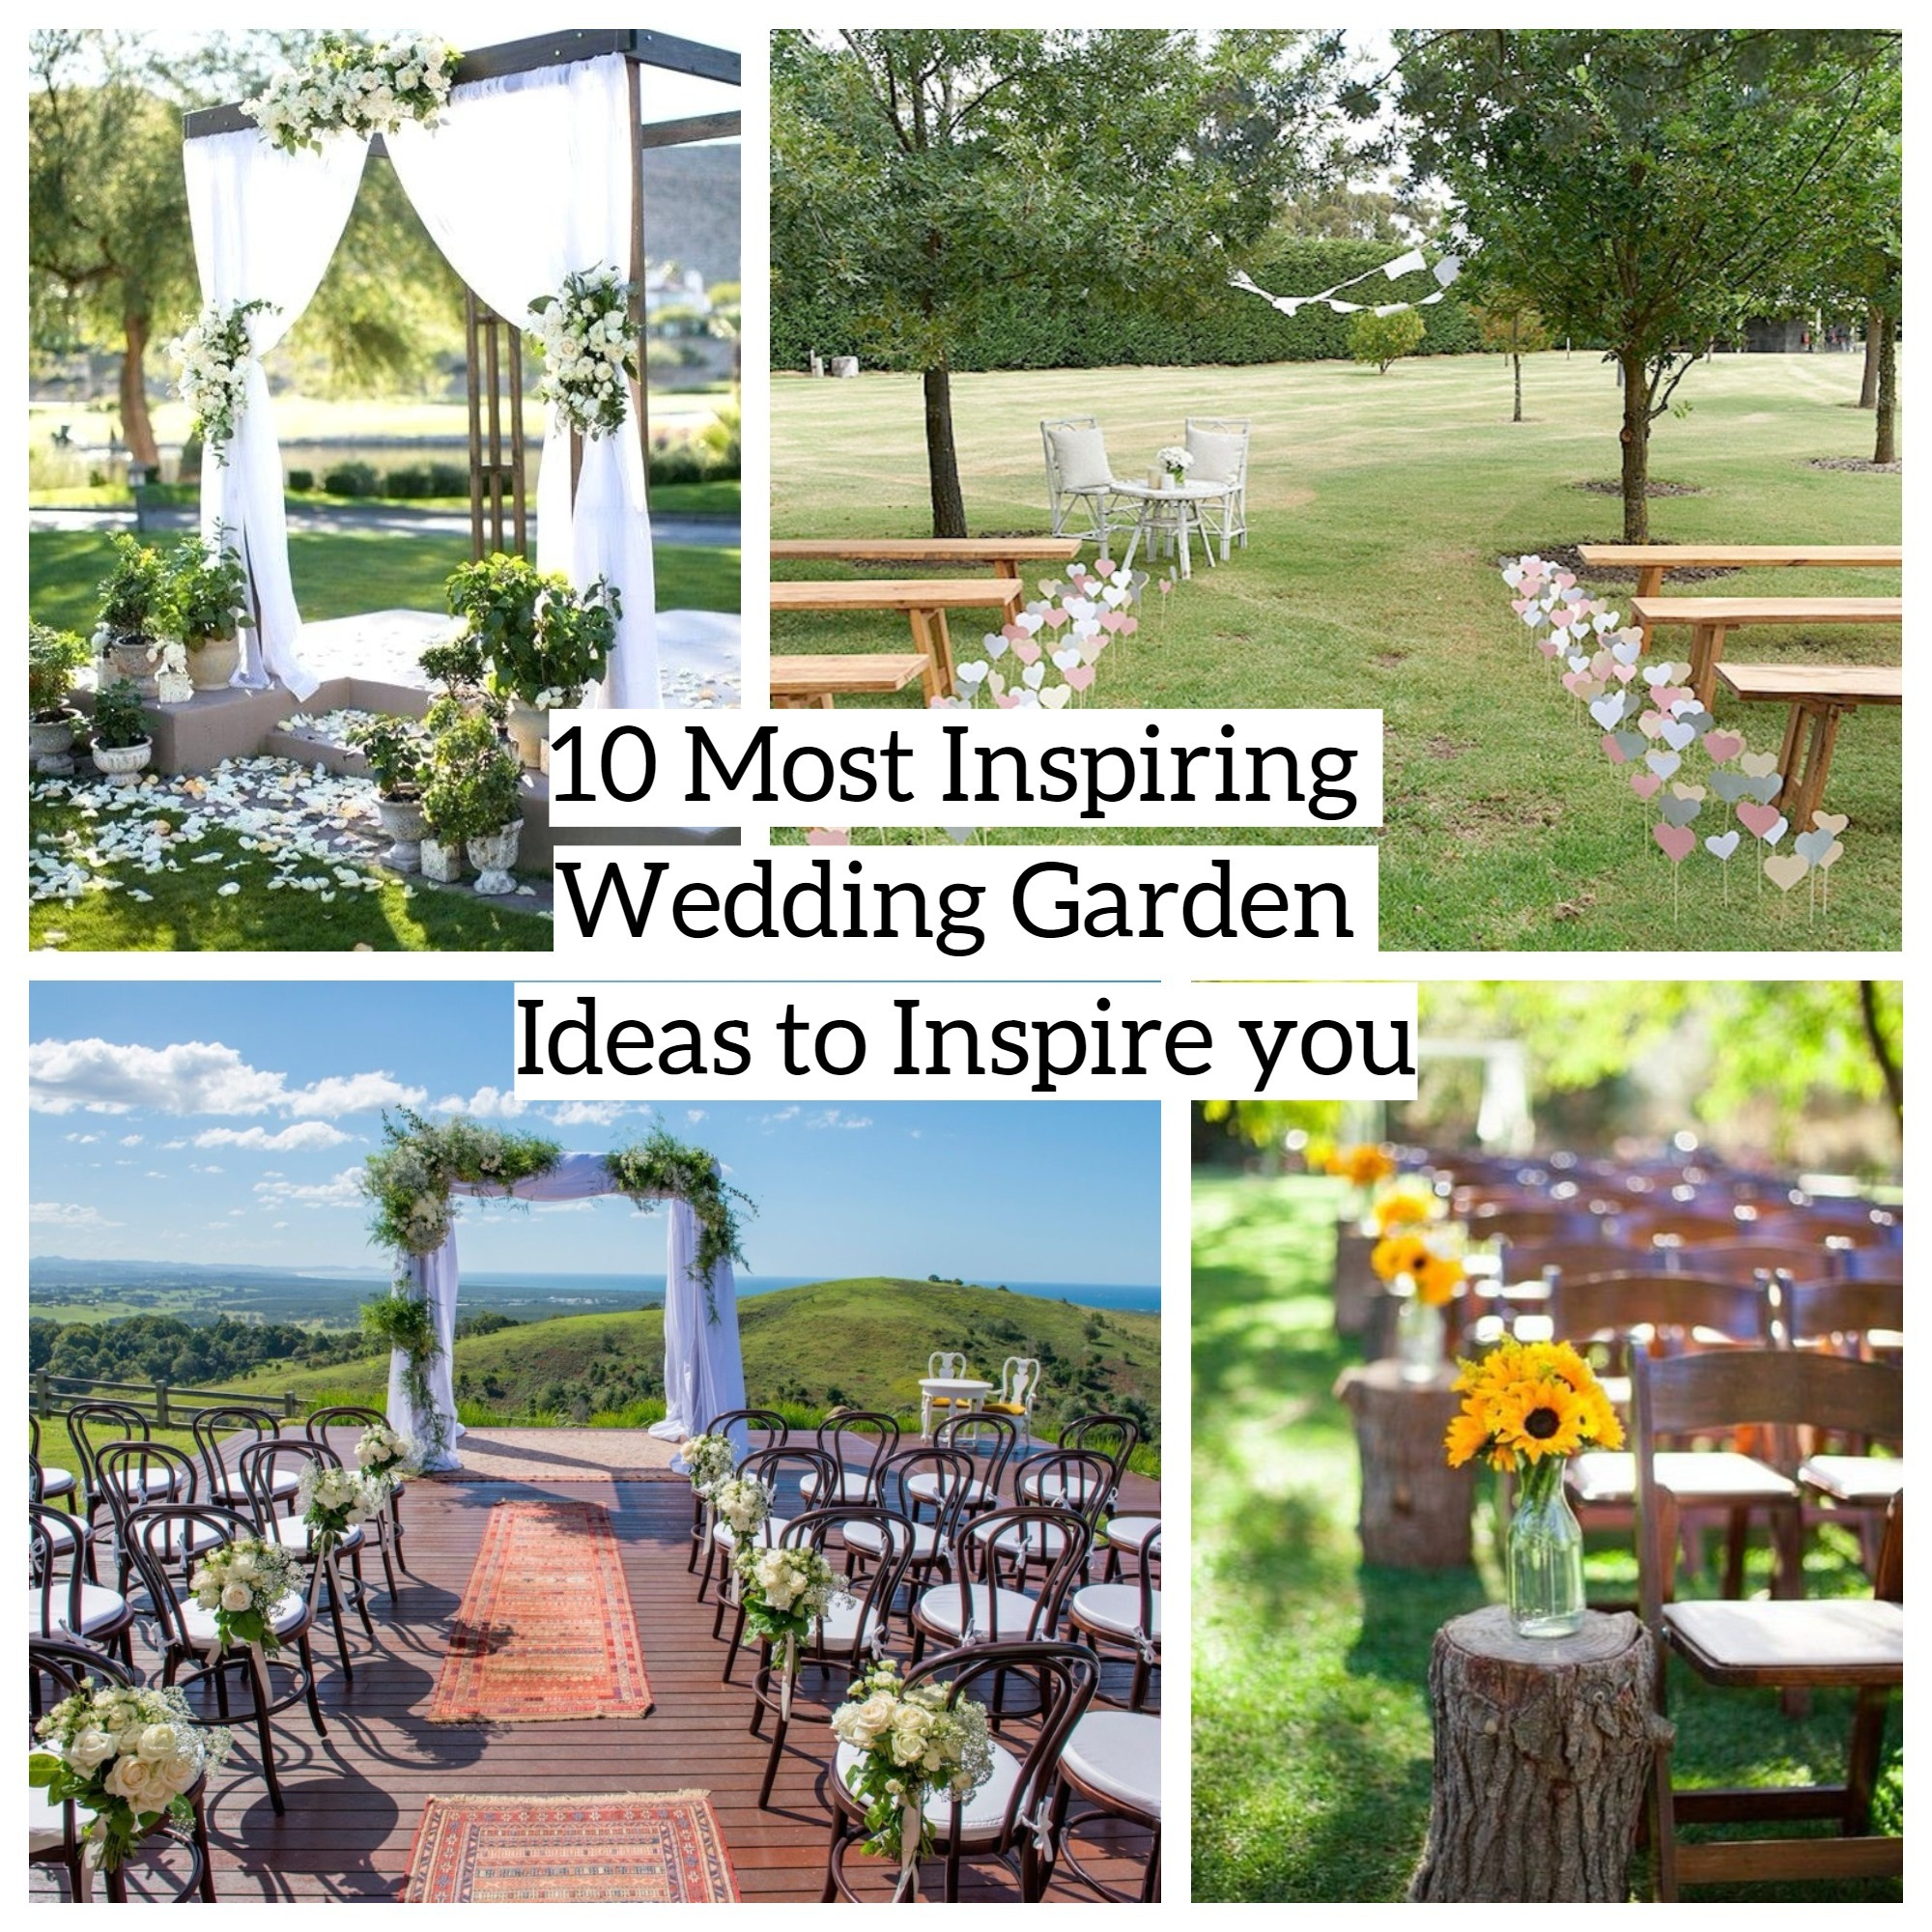 10 most inspiring wedding garden ideas to inspire you matchness surely its related to the venue whether for ceremony or the reception talking about wedding day wedding garden is nice to workwithnaturefo